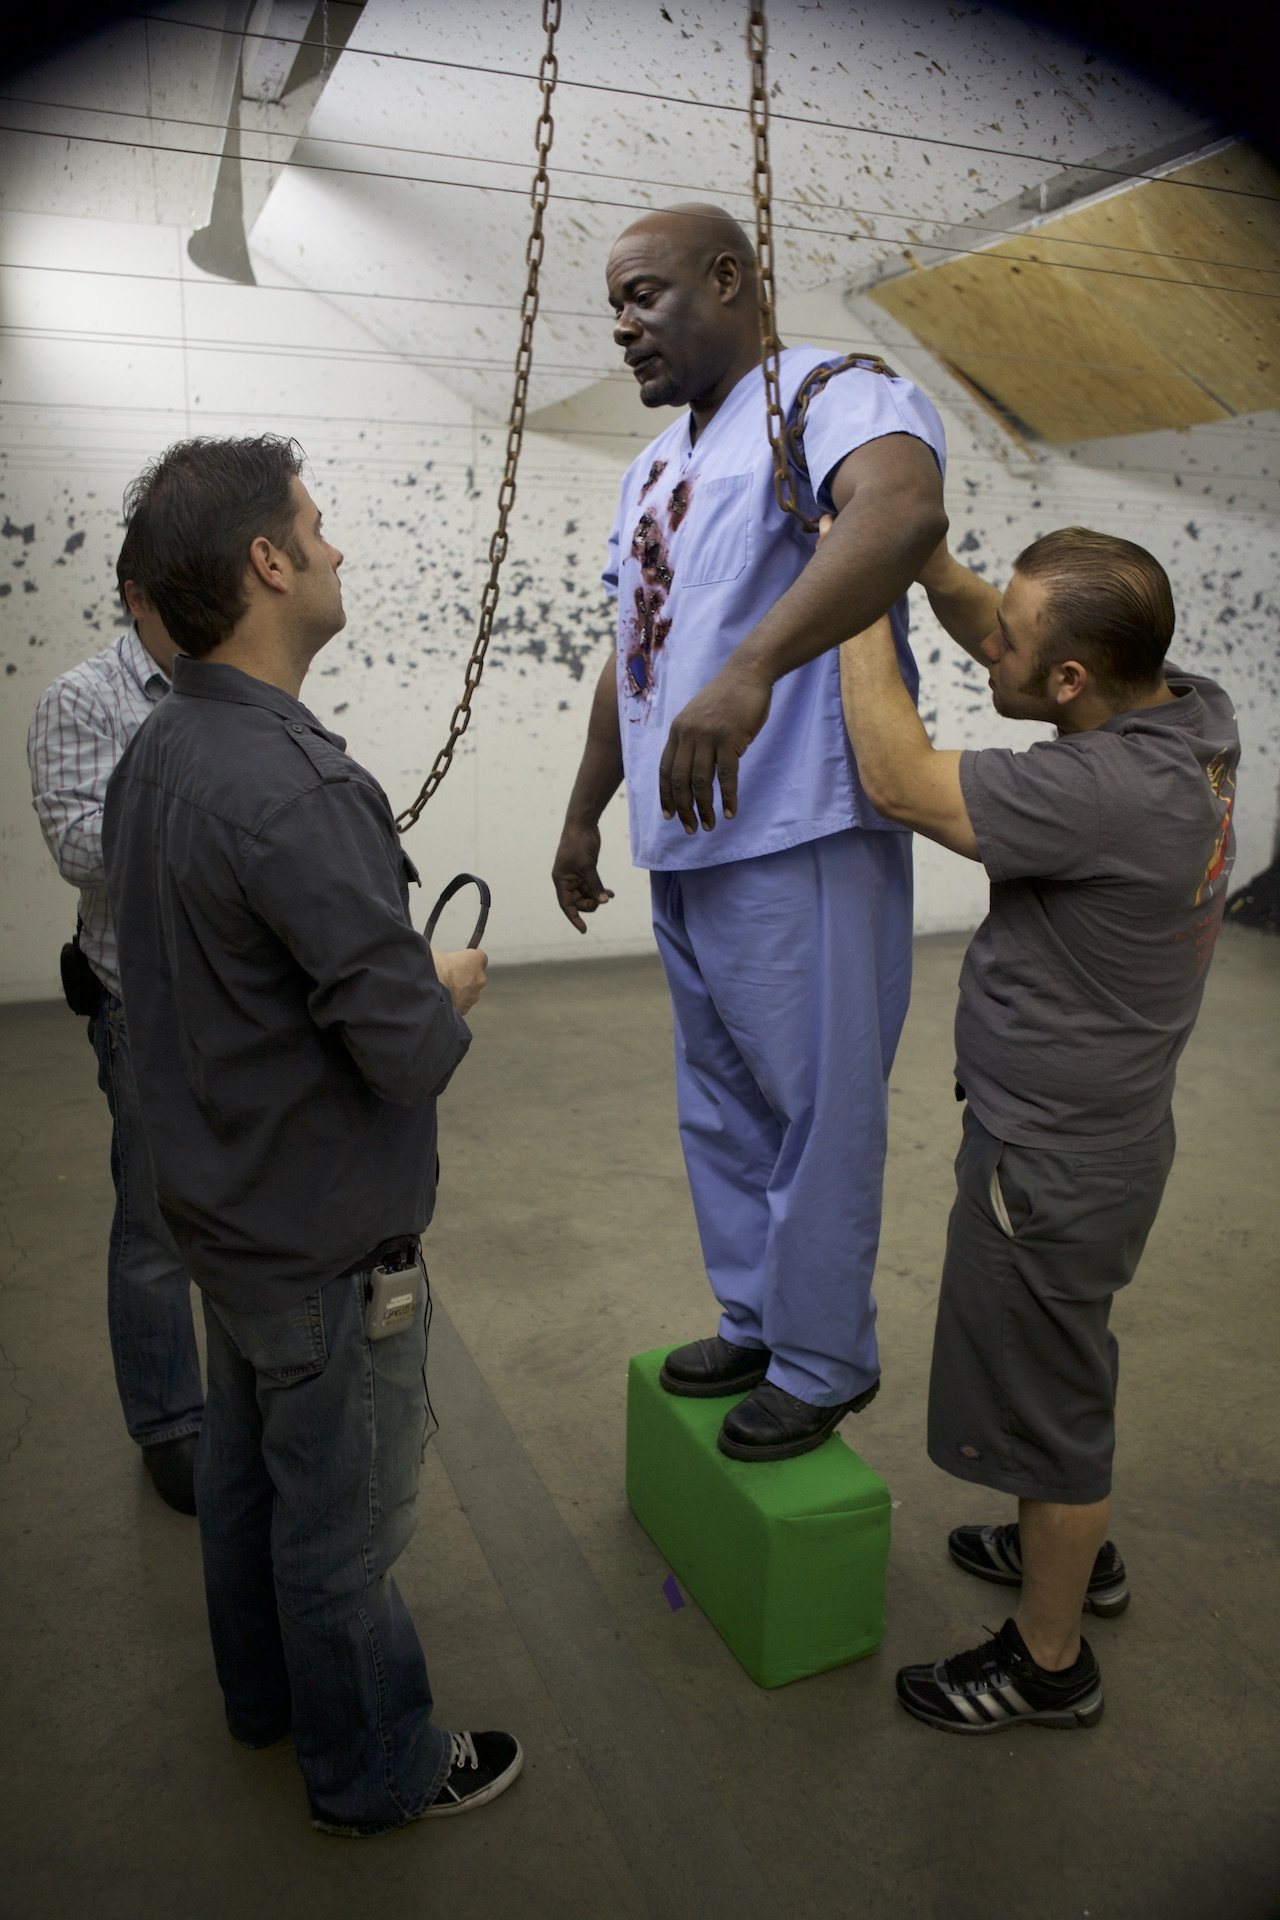 Giving a note to actor a'Ali-Salaam while the prop guys secure him for the scene. Firing Line gun range, Burbank. Spring 2011. Photo by Scott Everett White.